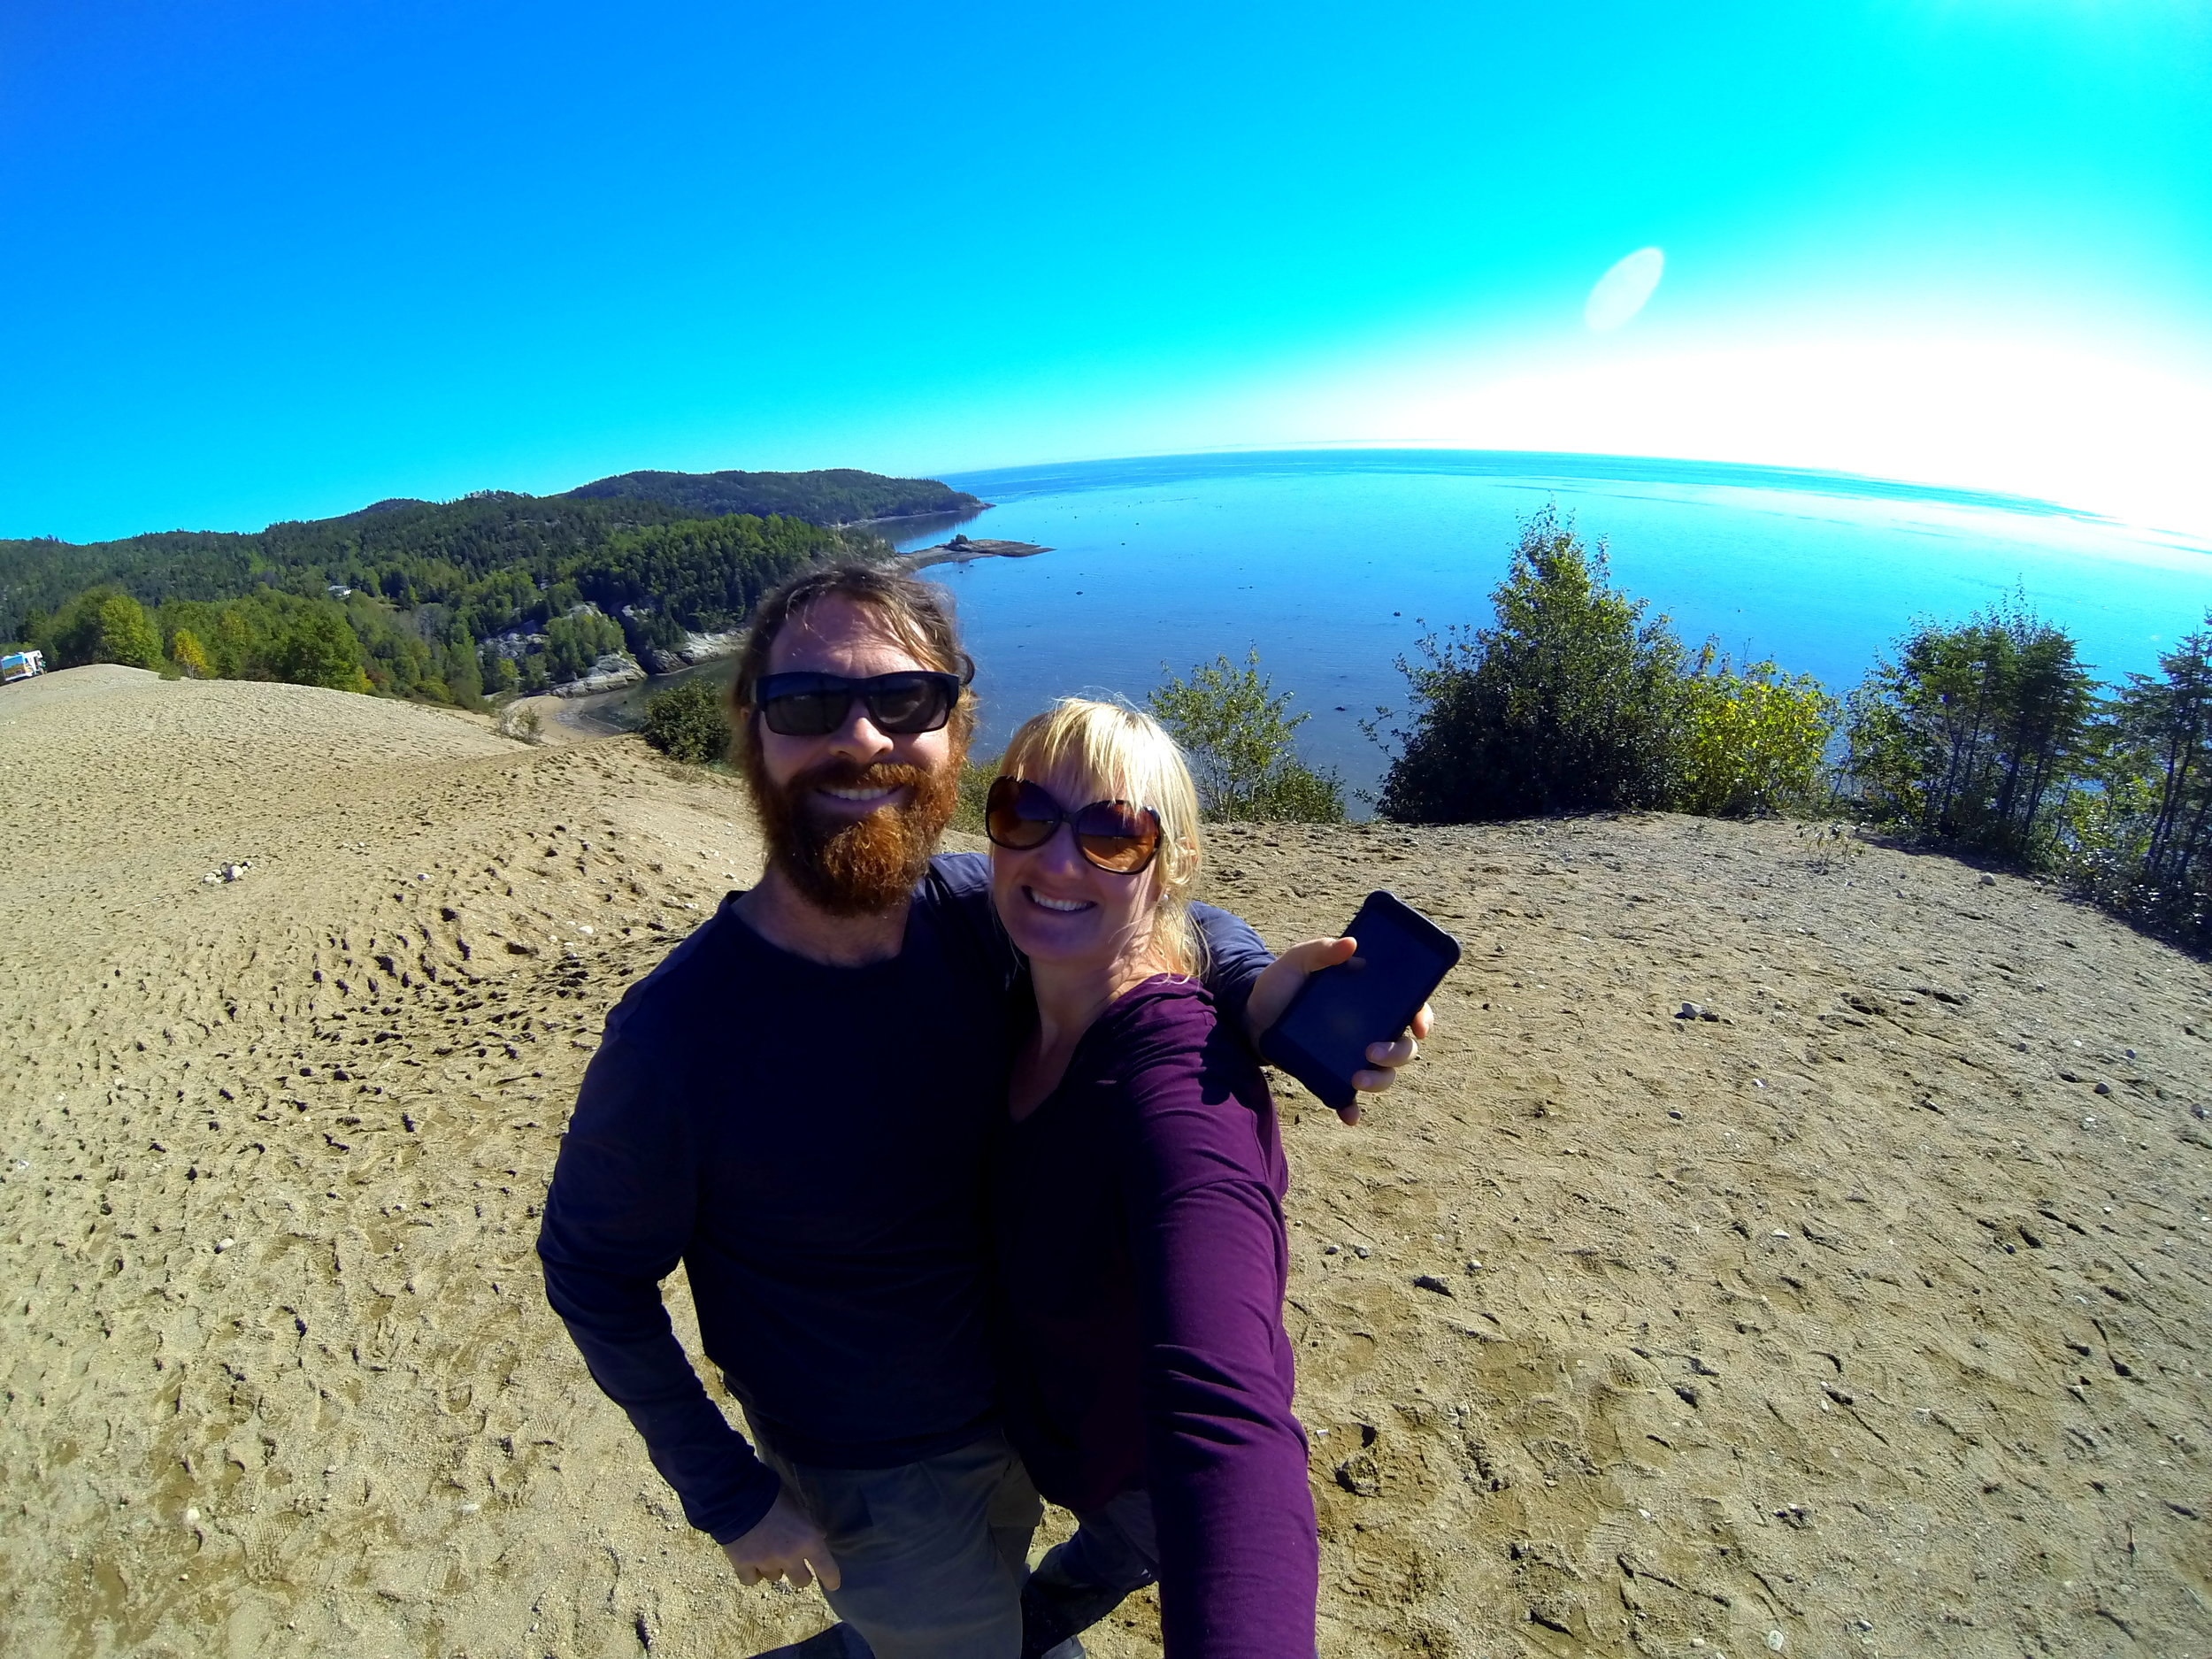 On top of the Tadoussac sand dunes